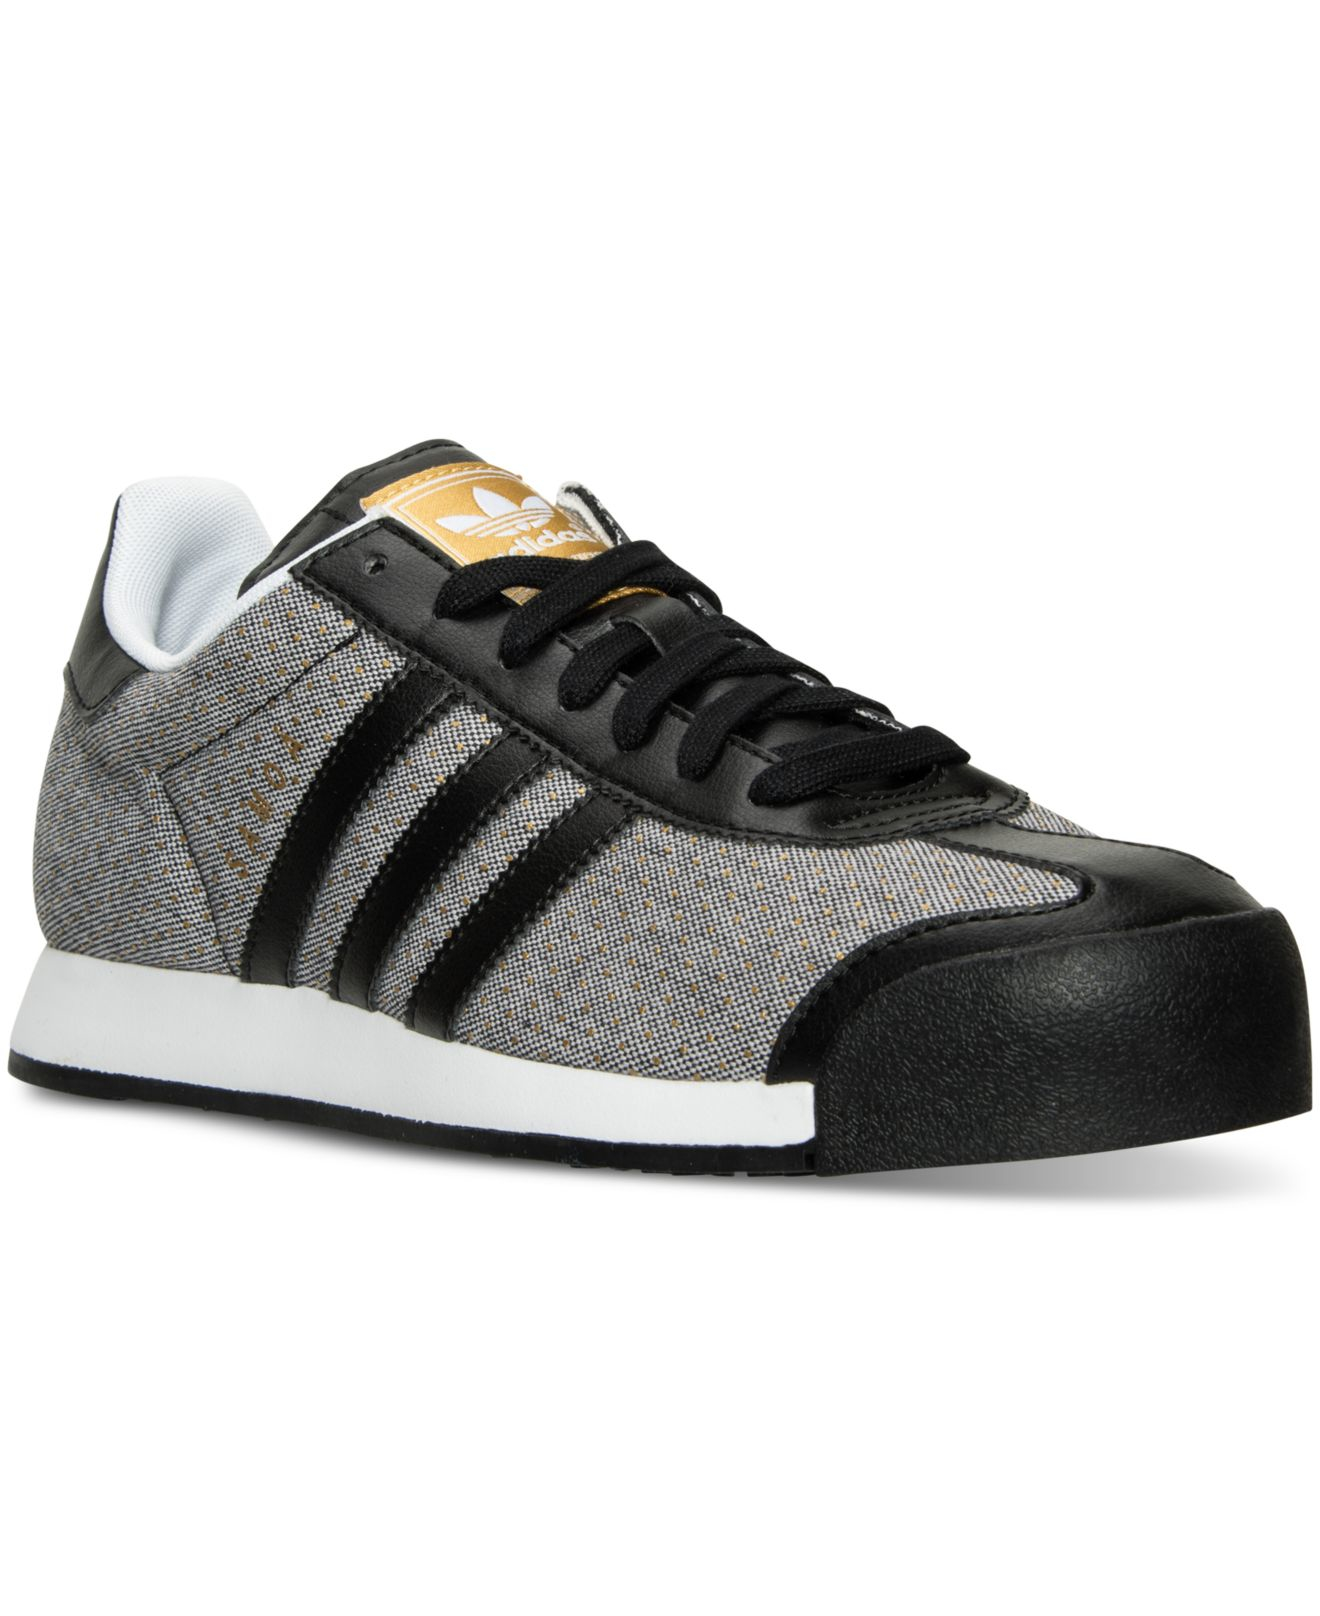 los angeles 51ab8 a0a90 Lyst - adidas Originals Women s Samoa Casual Sneakers From Finish ...